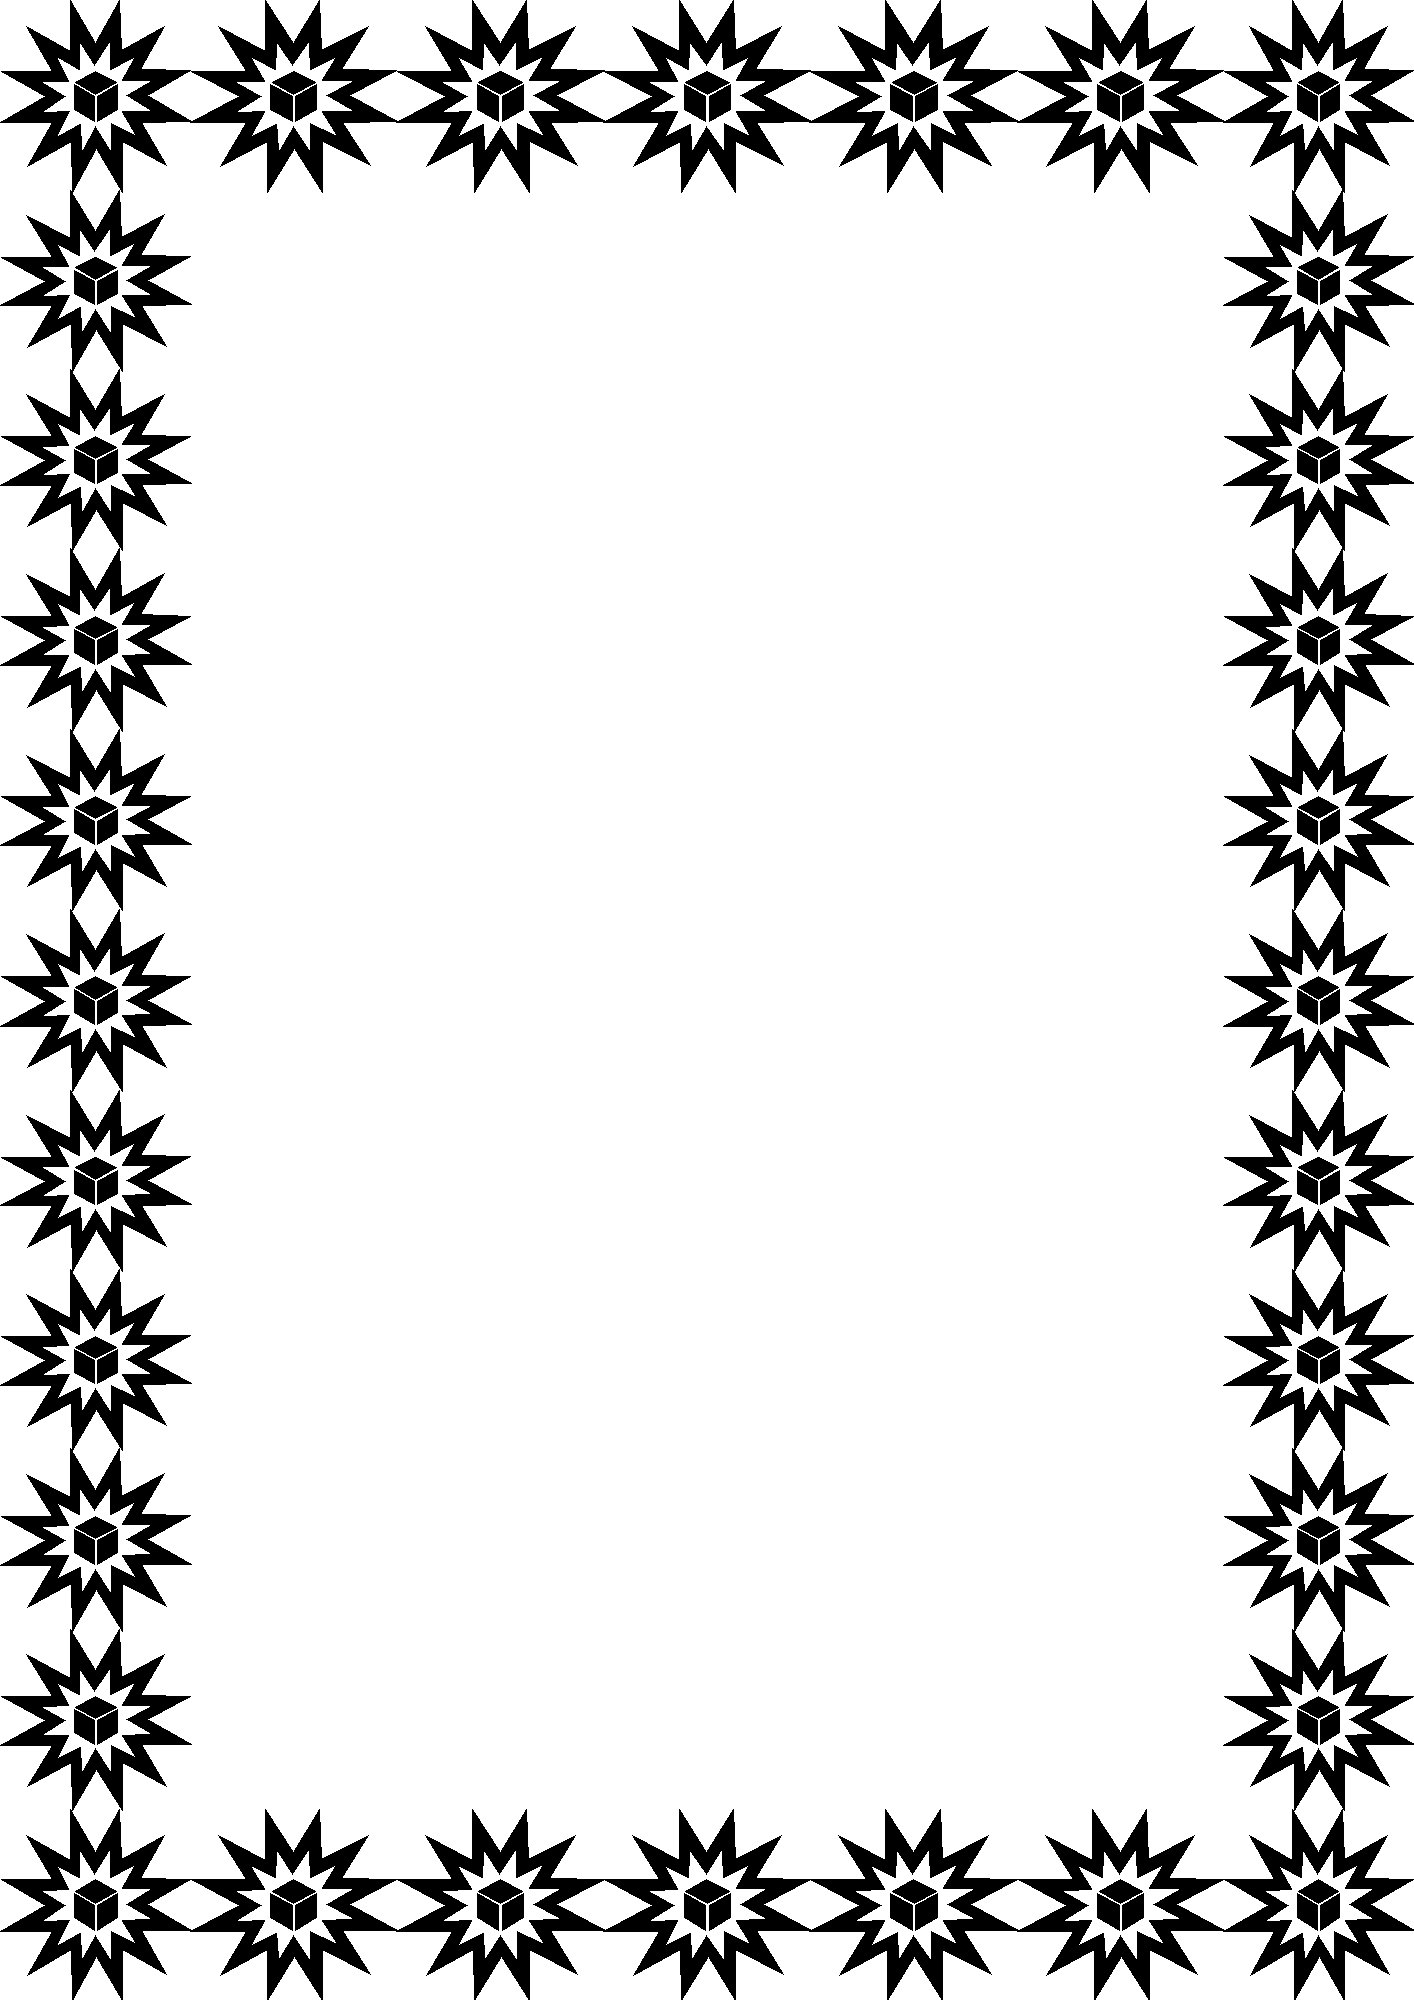 Fun clipart borders And clipart Frames Images border